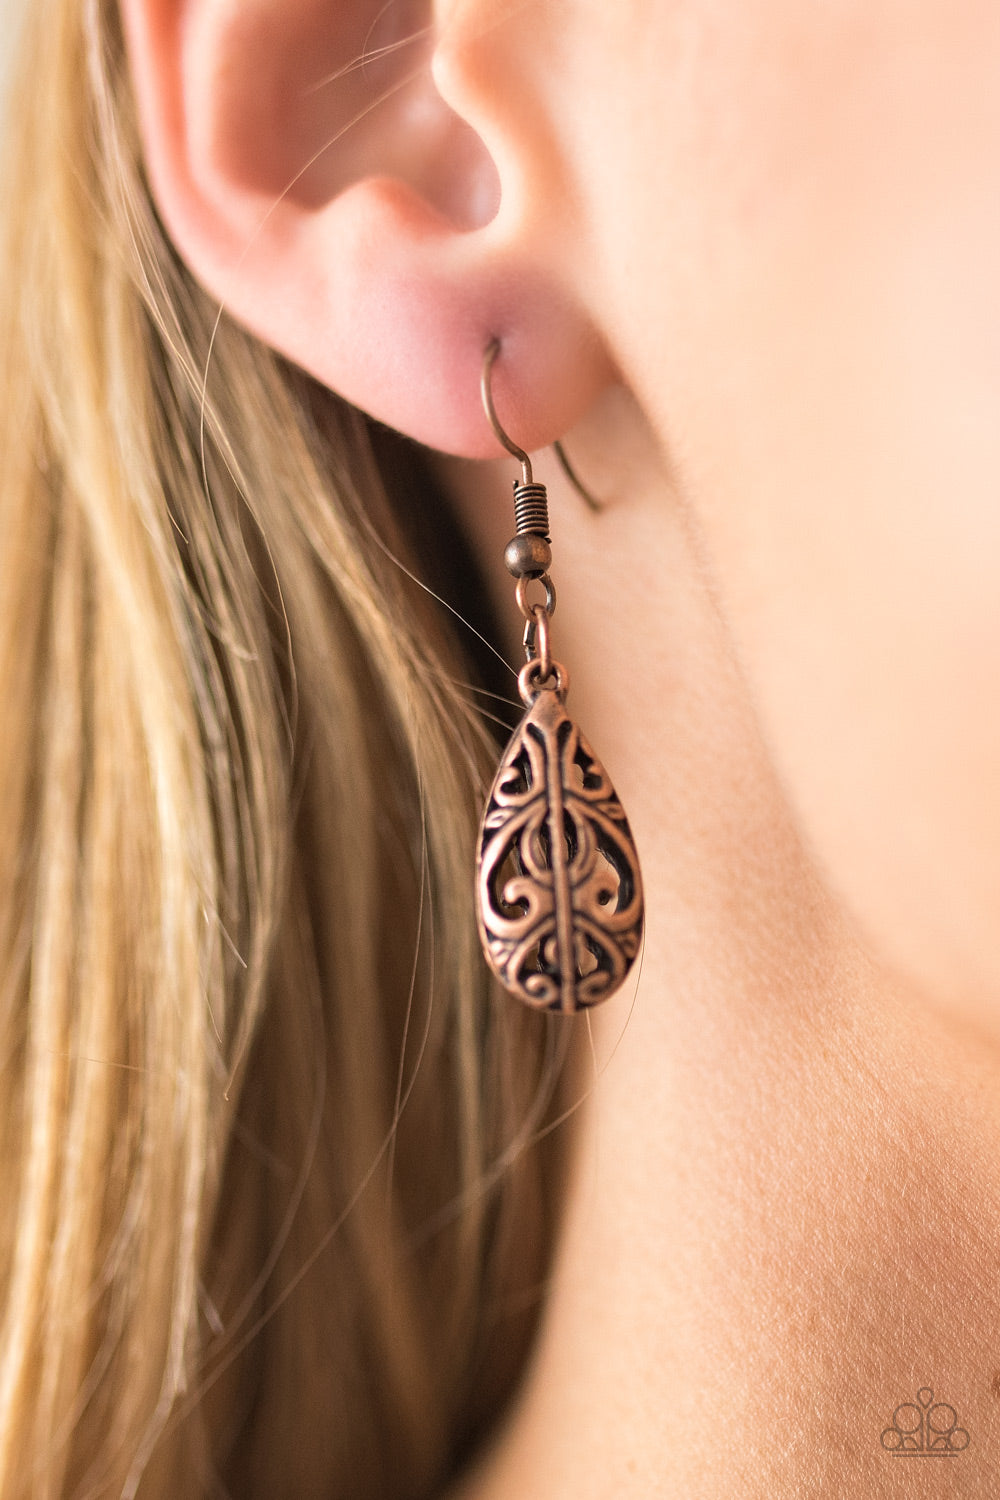 Featuring an airy 3-dimensonal frame, an airy filigree filled teardrop swings from the ear in a casual fashion. Earring attaches to a standard fishhook fitting.  Sold as one pair of earrings.  Always nickel and lead free.